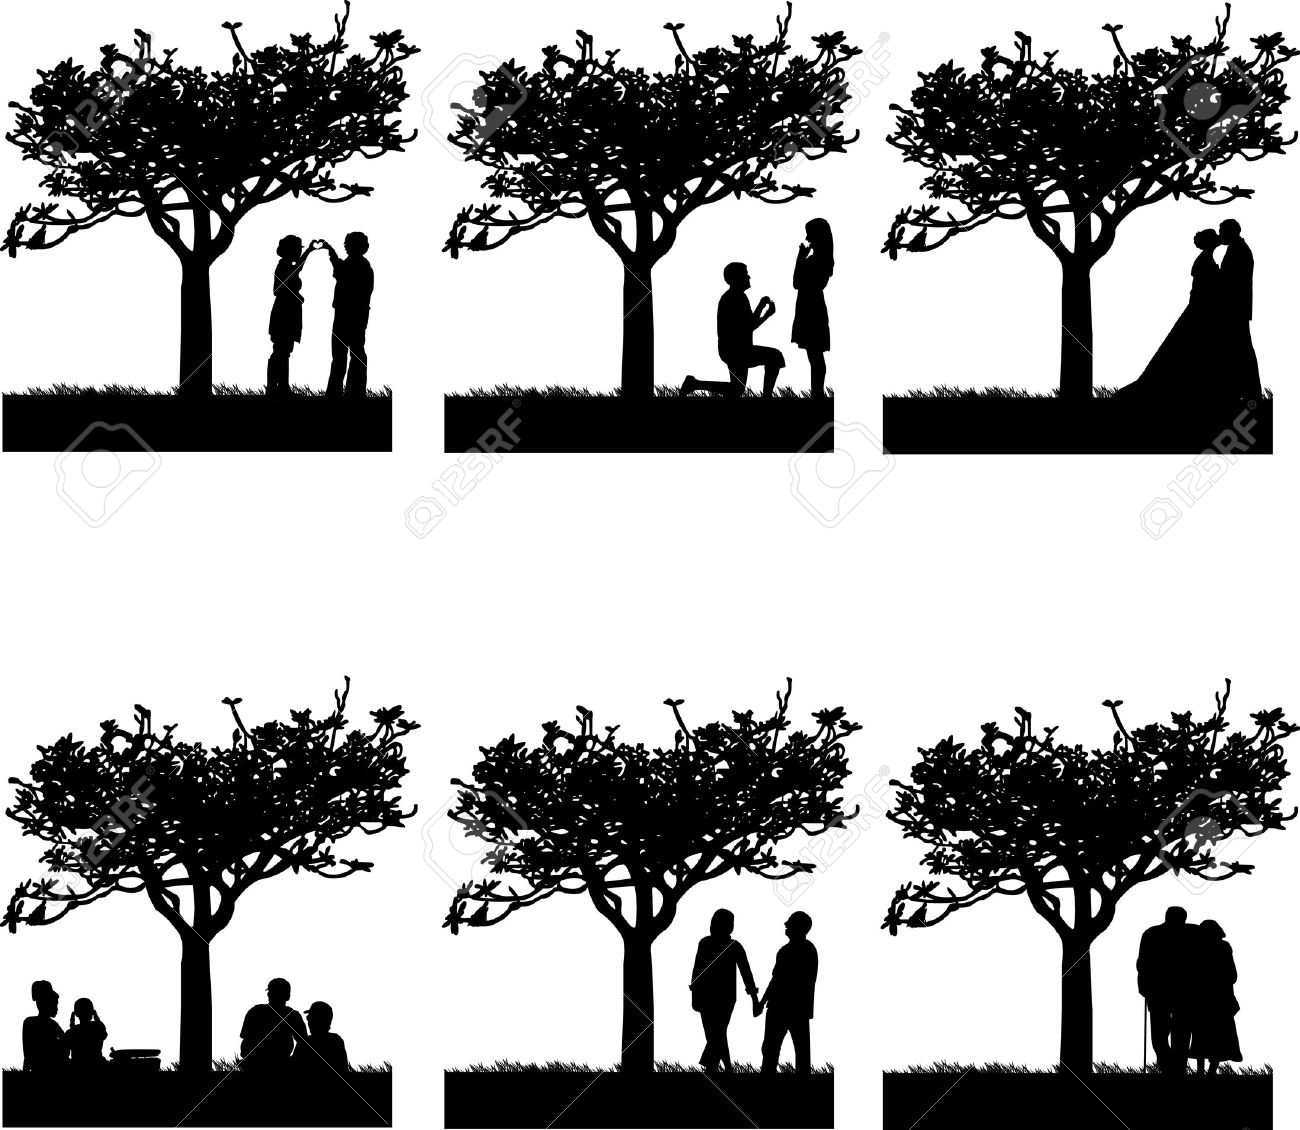 Stages of development at different stages of life silhouette Stock Vector - 14439893